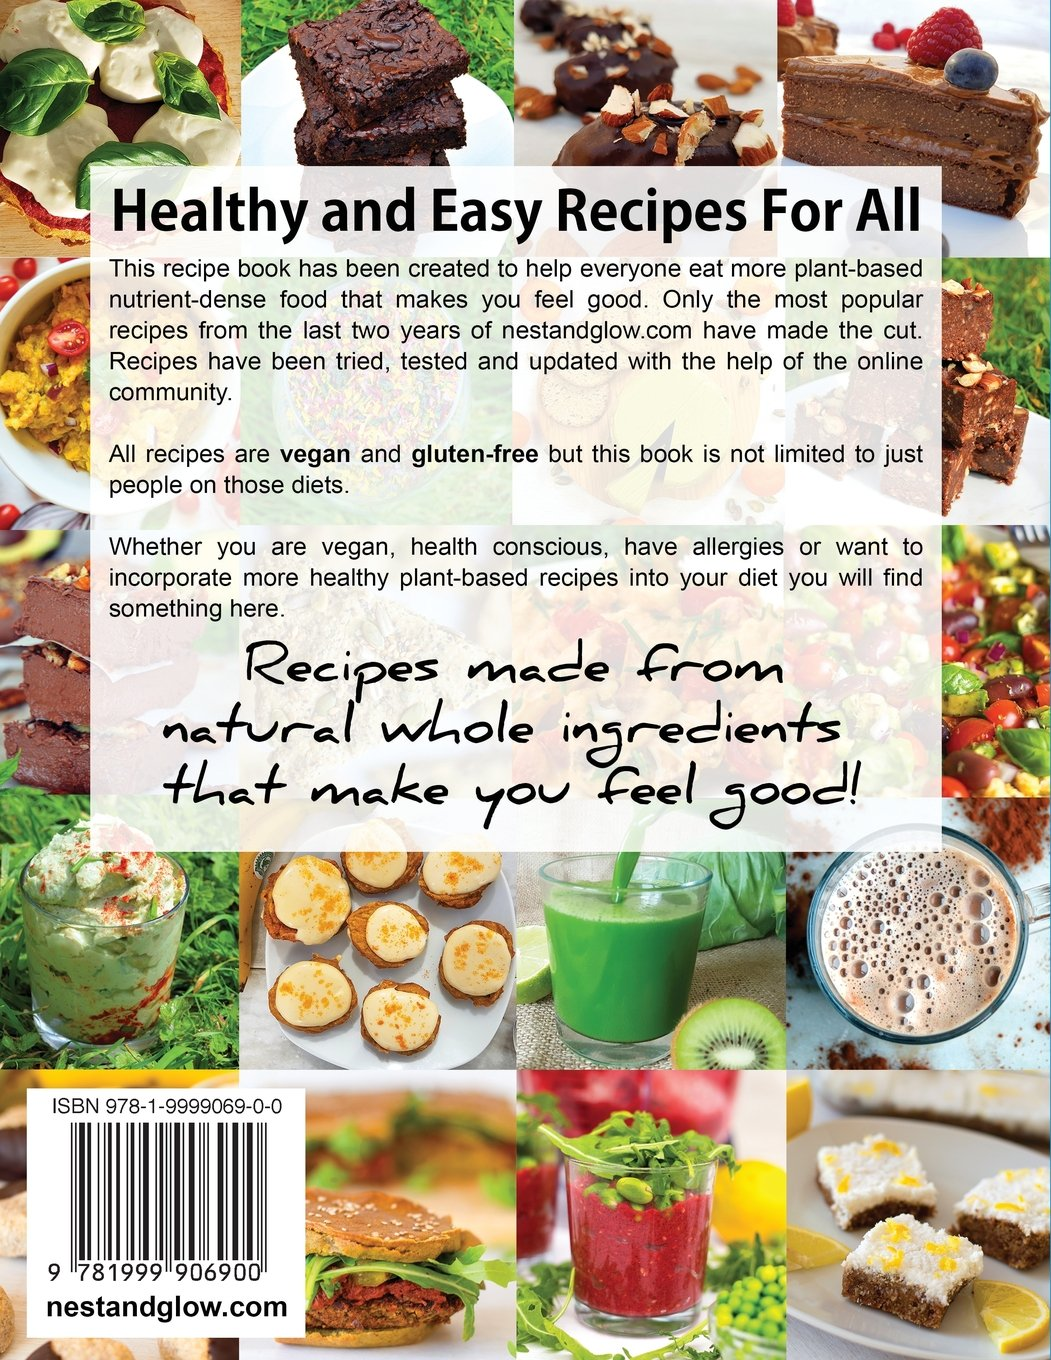 Healthy and easy over 100 plant based and nutrient dense recipes healthy and easy over 100 plant based and nutrient dense recipes bastian durward 9781999906900 amazon books forumfinder Gallery